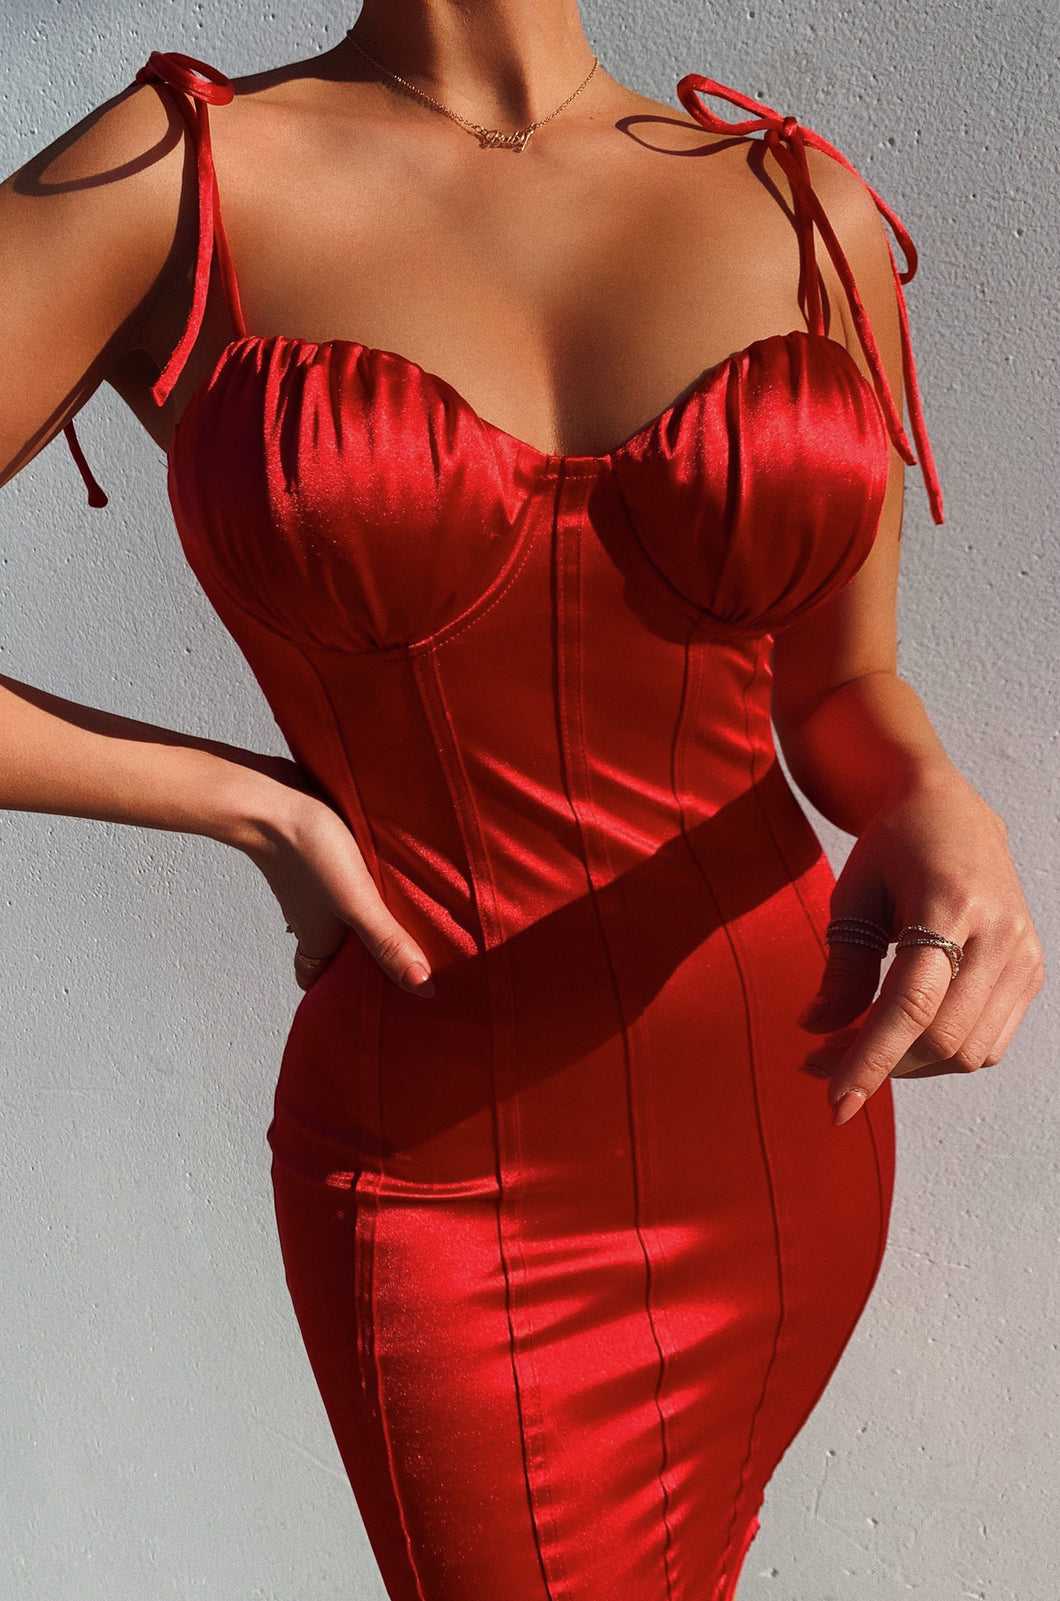 As You Wish Dress - Red